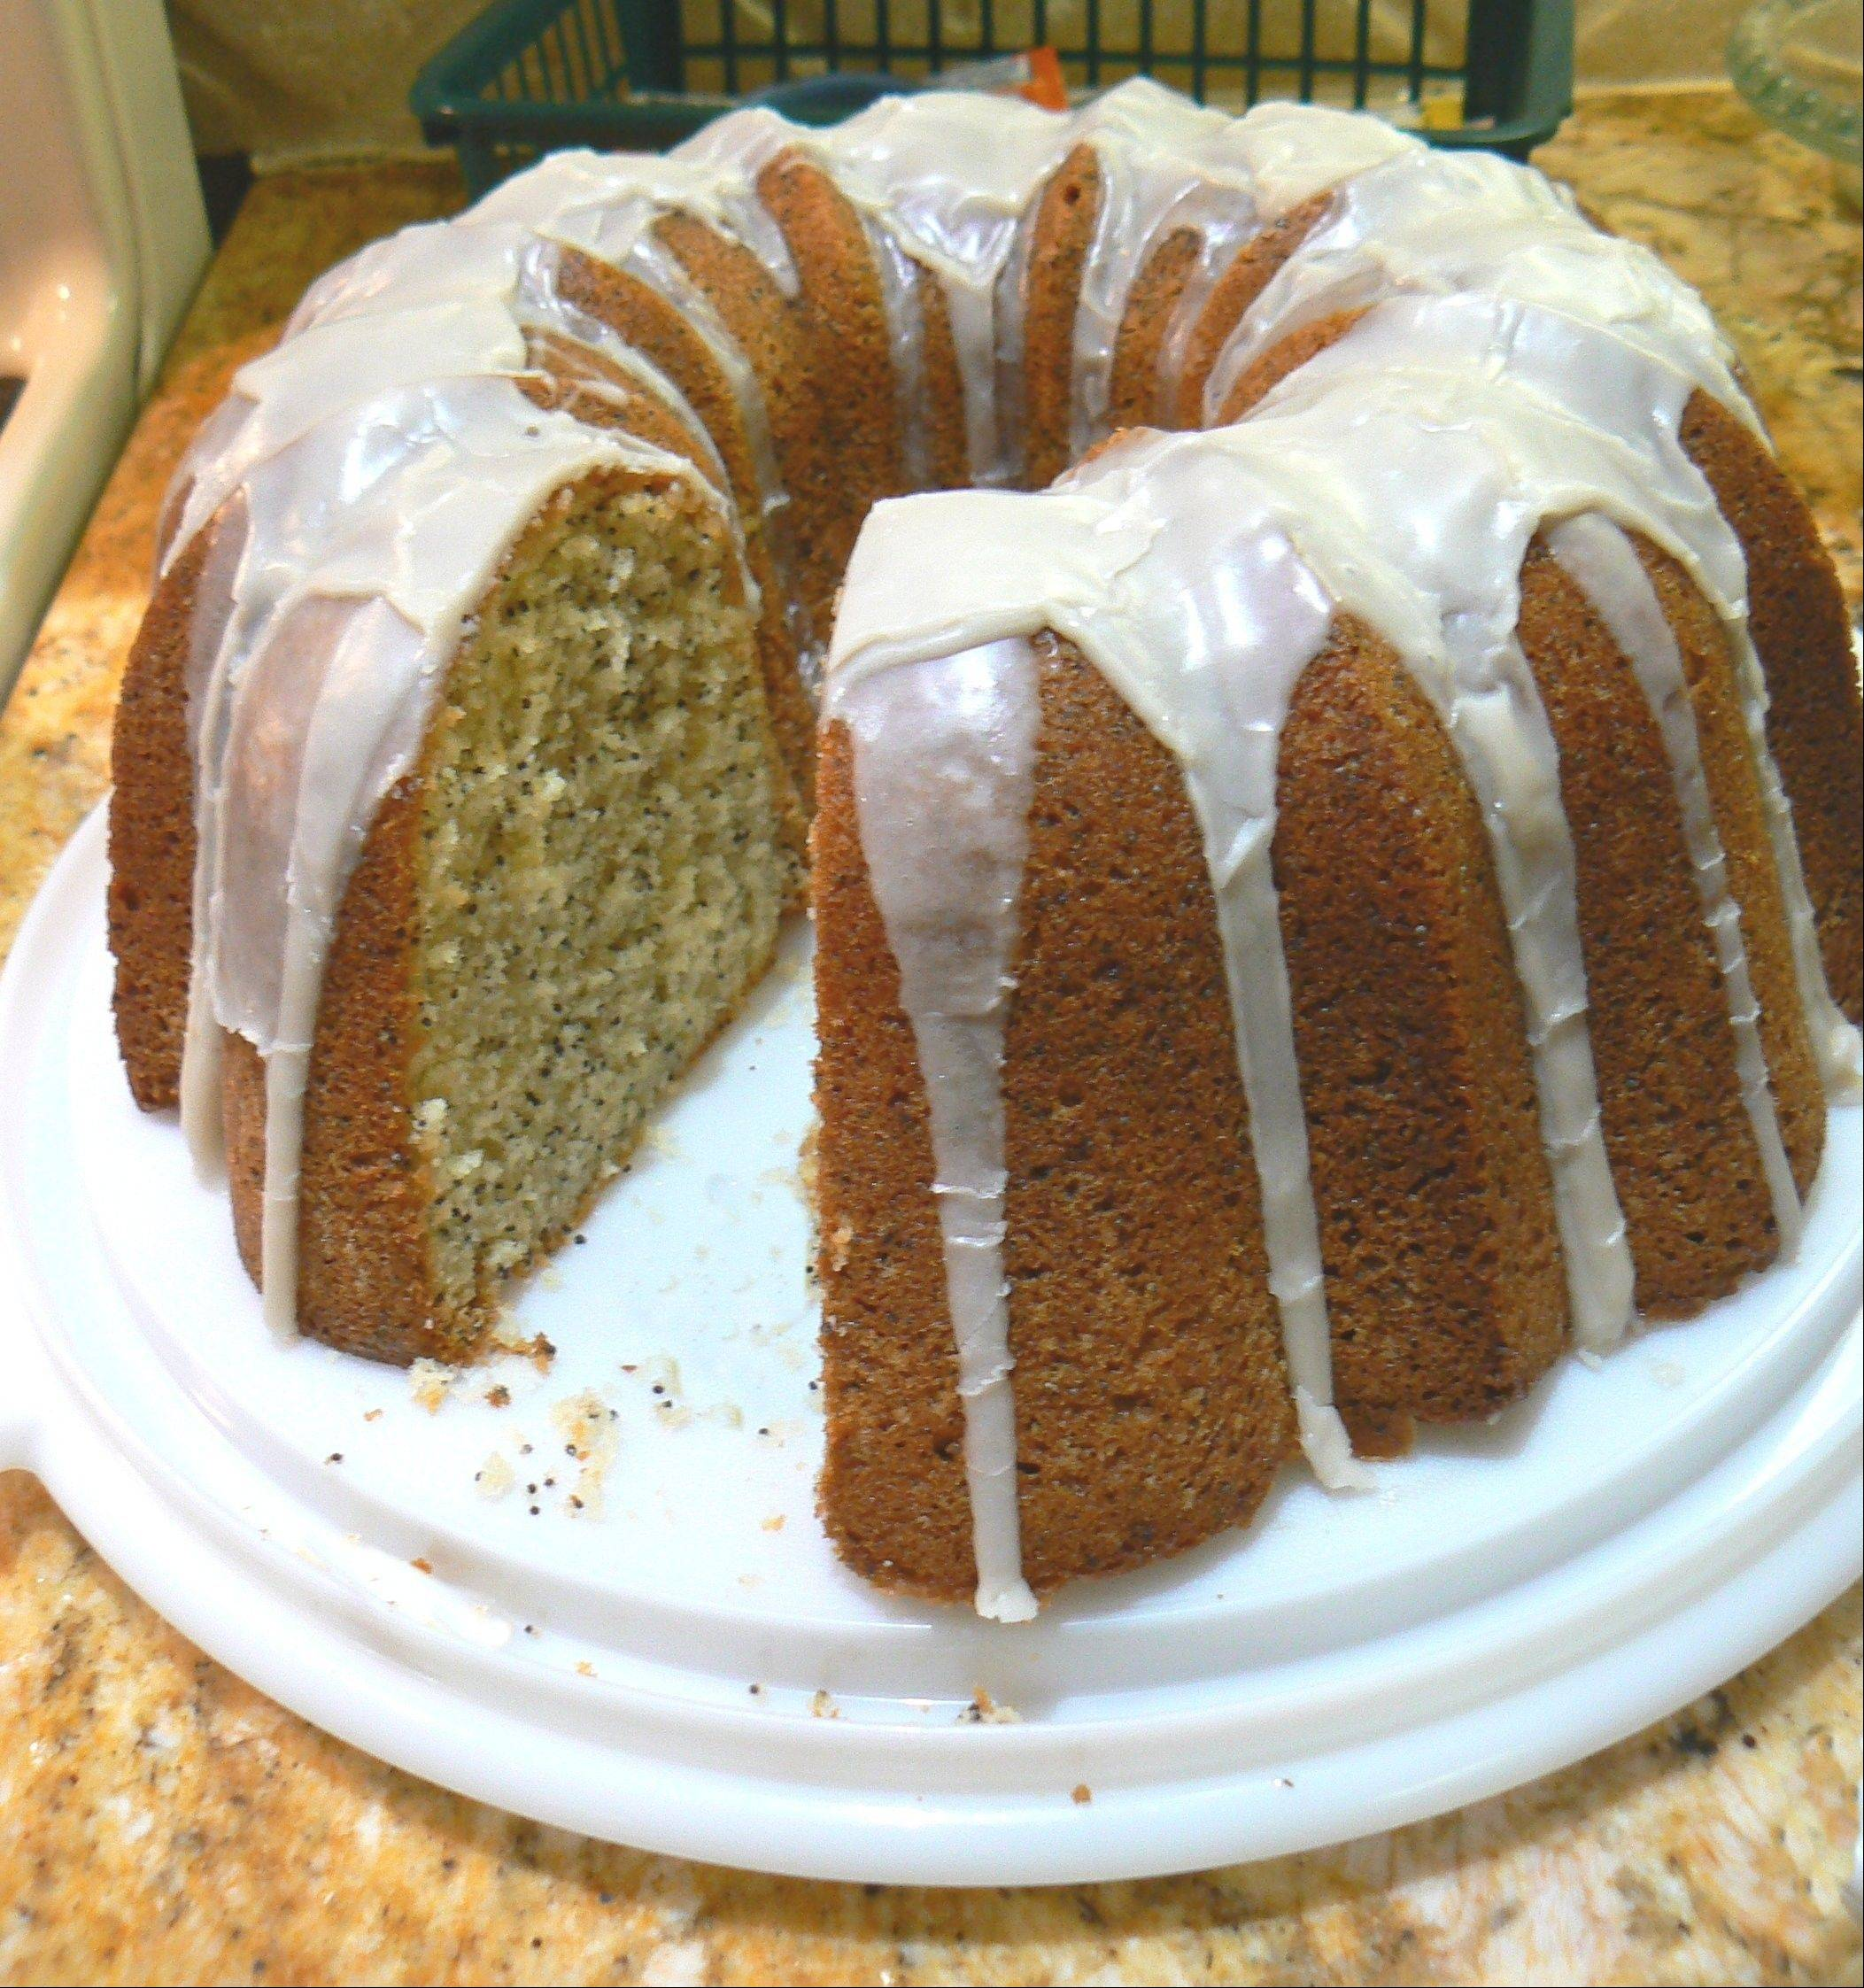 A new bundt pan takes the anxiety out of making Lemon Poppy seed Bundt Cake for holiday guests.